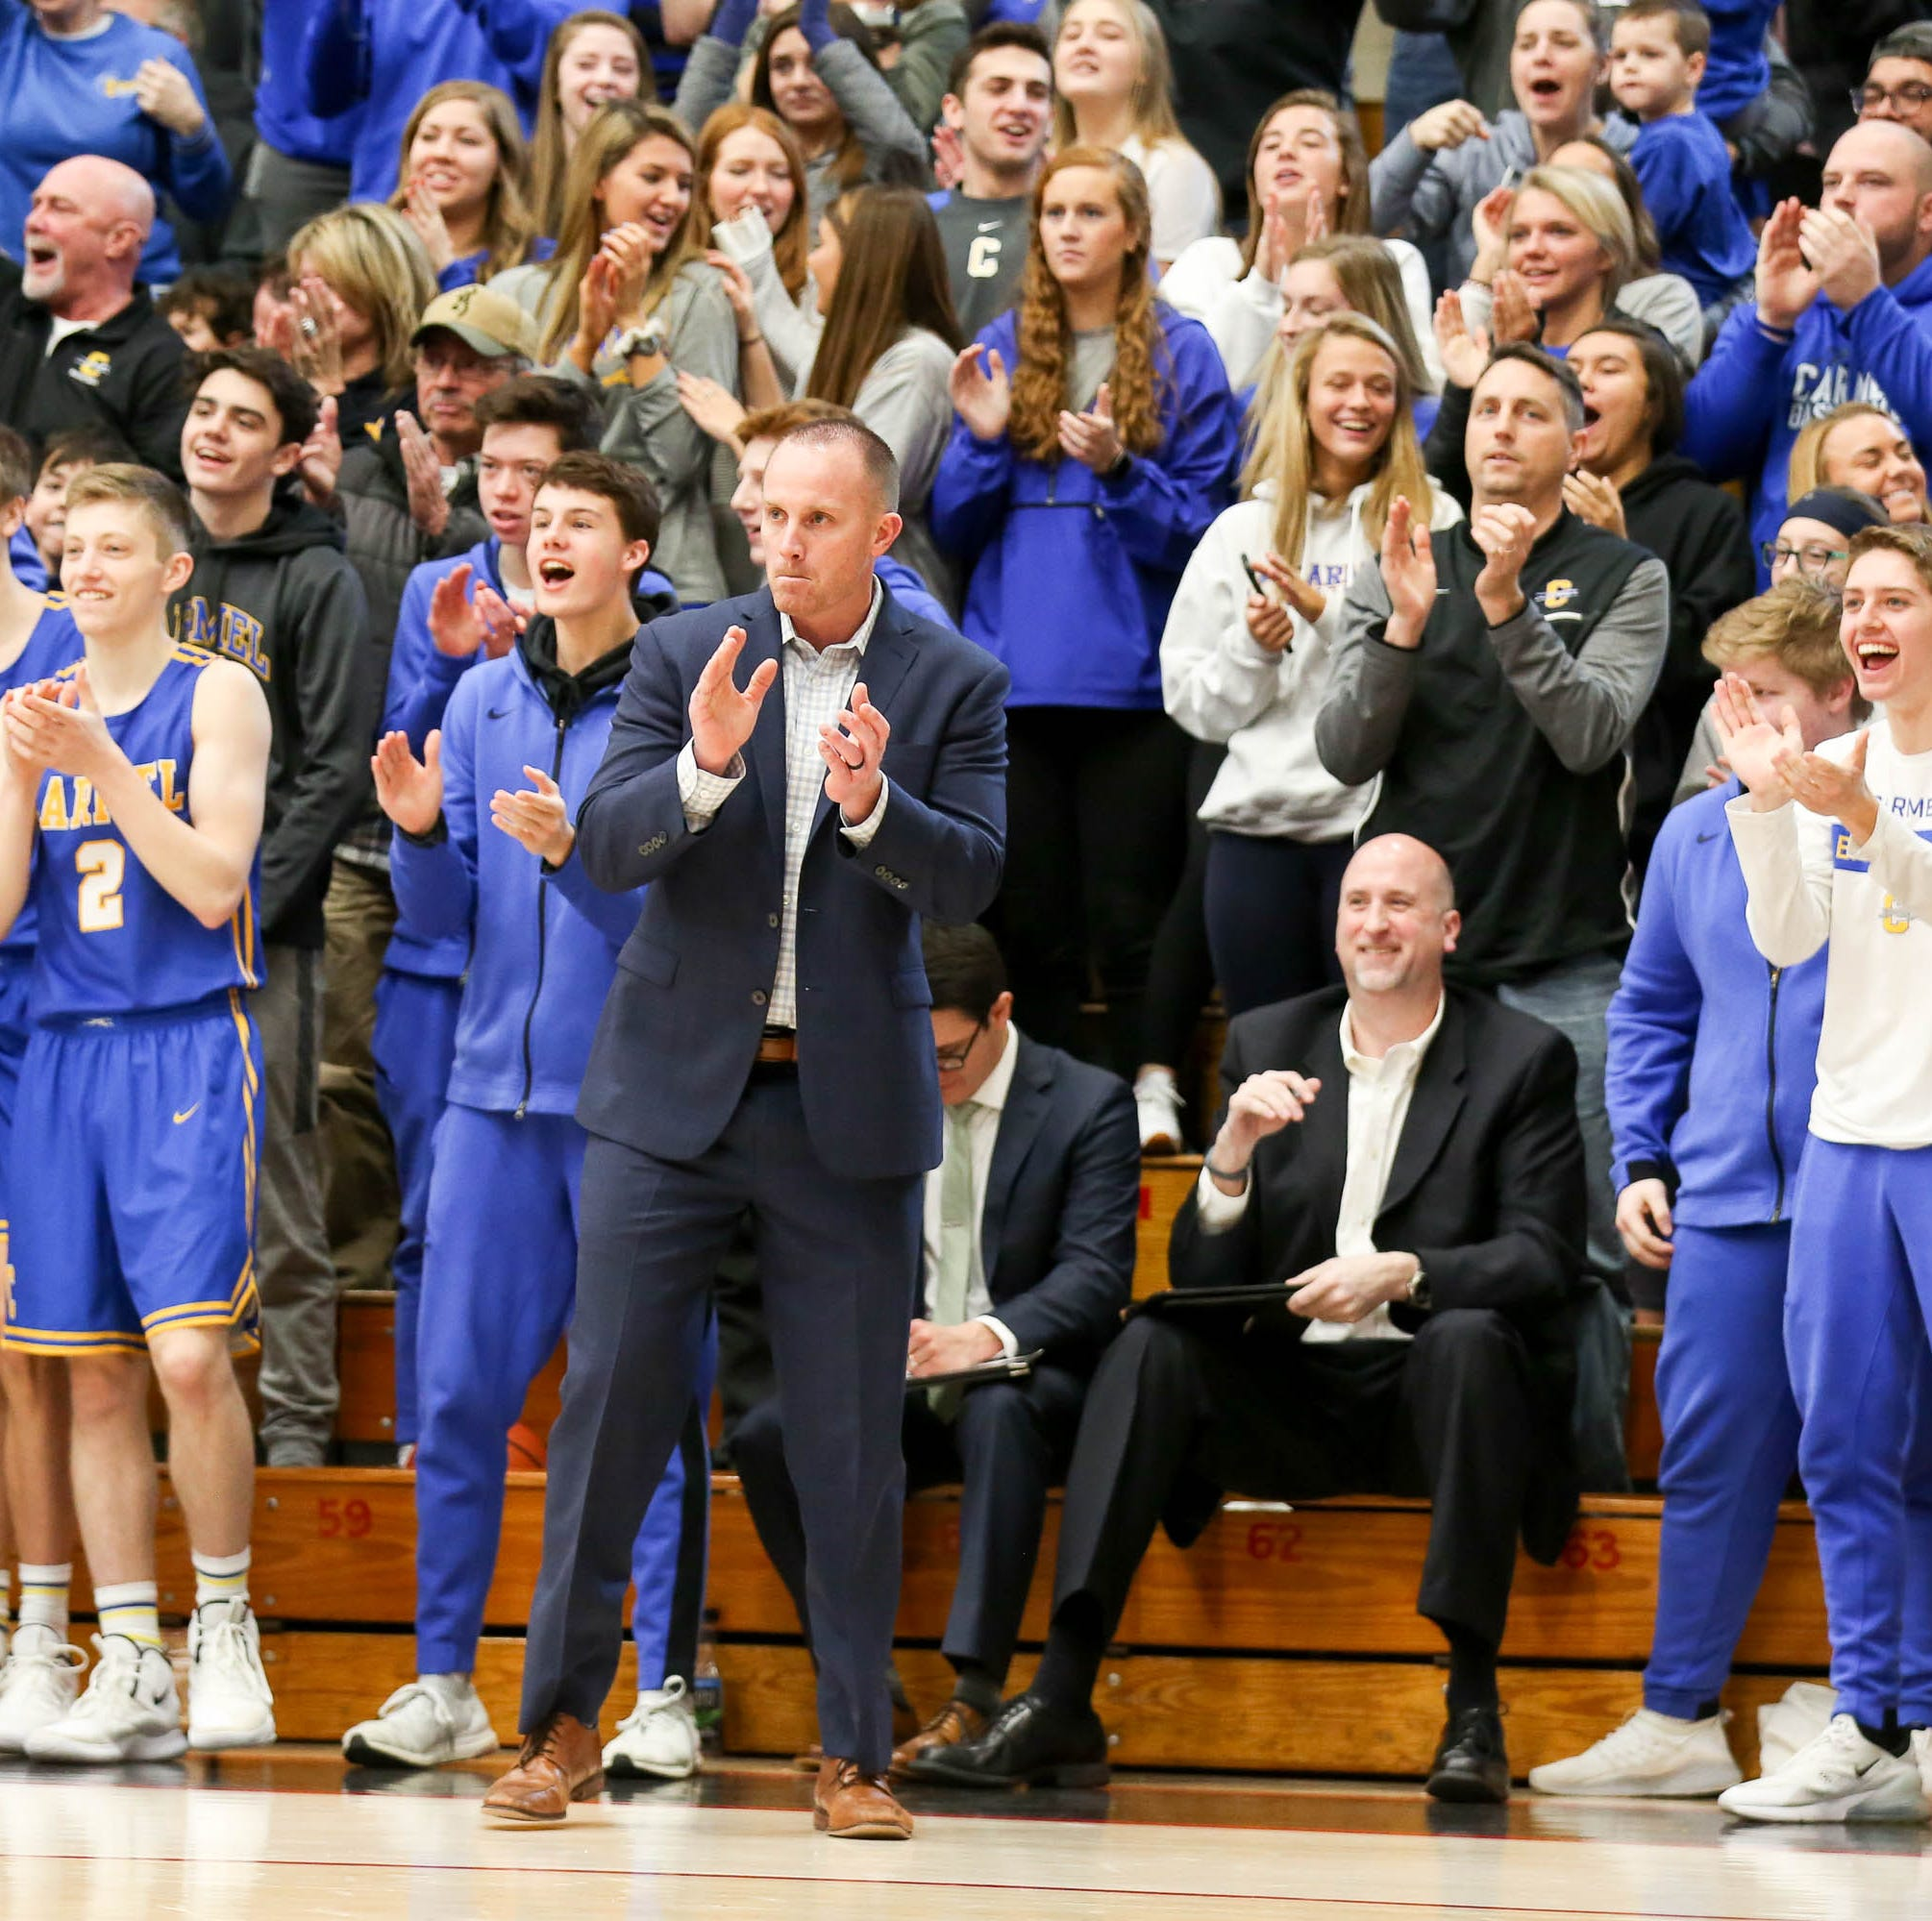 Carmel Coach Ryan Osborn, players, and fans begin to celebrate as the final seconds of the games has them at at 16 point lead during the second half of Carmel vs. Fort Wayne Northrop High School in the IHSAA Varsity Boys Regional Semifinals held at Logansport High School, March 9, 2019.